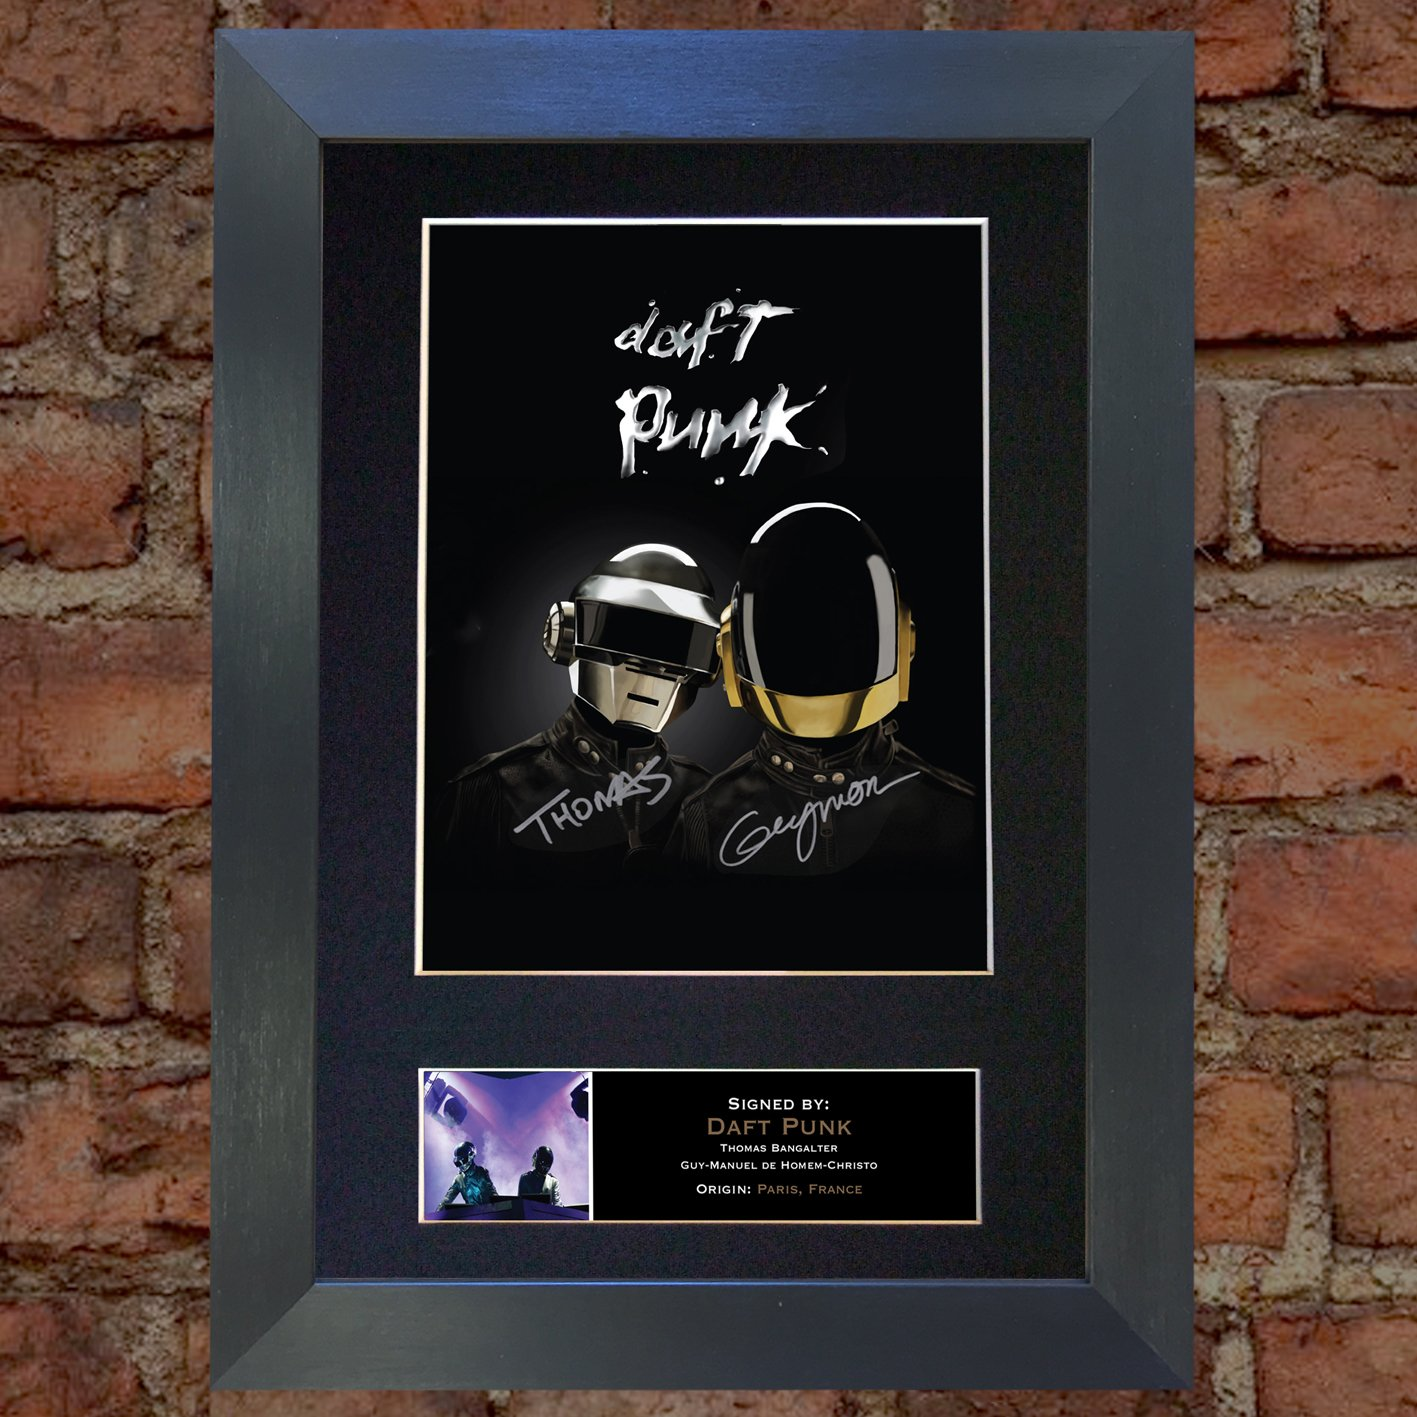 DAFT PUNK Top Quality Signed Autograph Mounted Photo Reproduction PRINT A4 Very Rare (297 x 210mm) #353 (Black Frame) The Autograph Collector